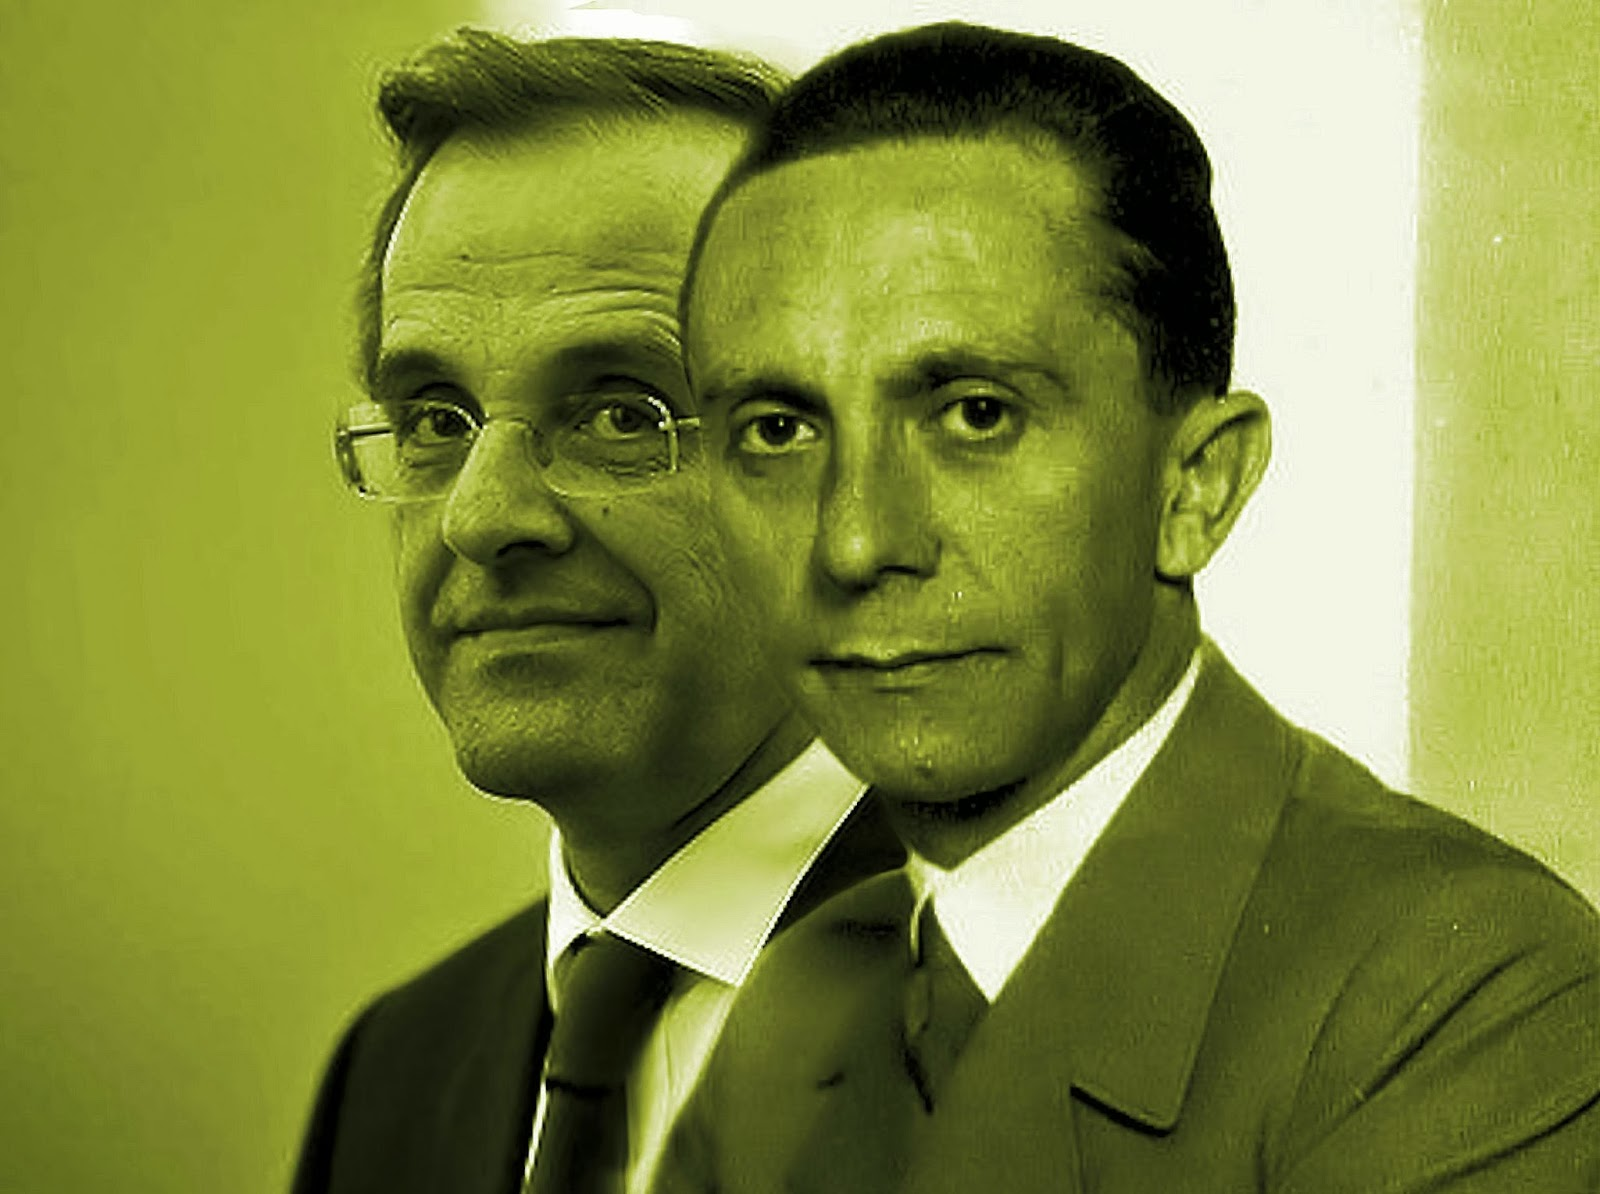 Joseph_Goebbels with Antonis Samaras a souvenir by OKTANA for My Pillow Book